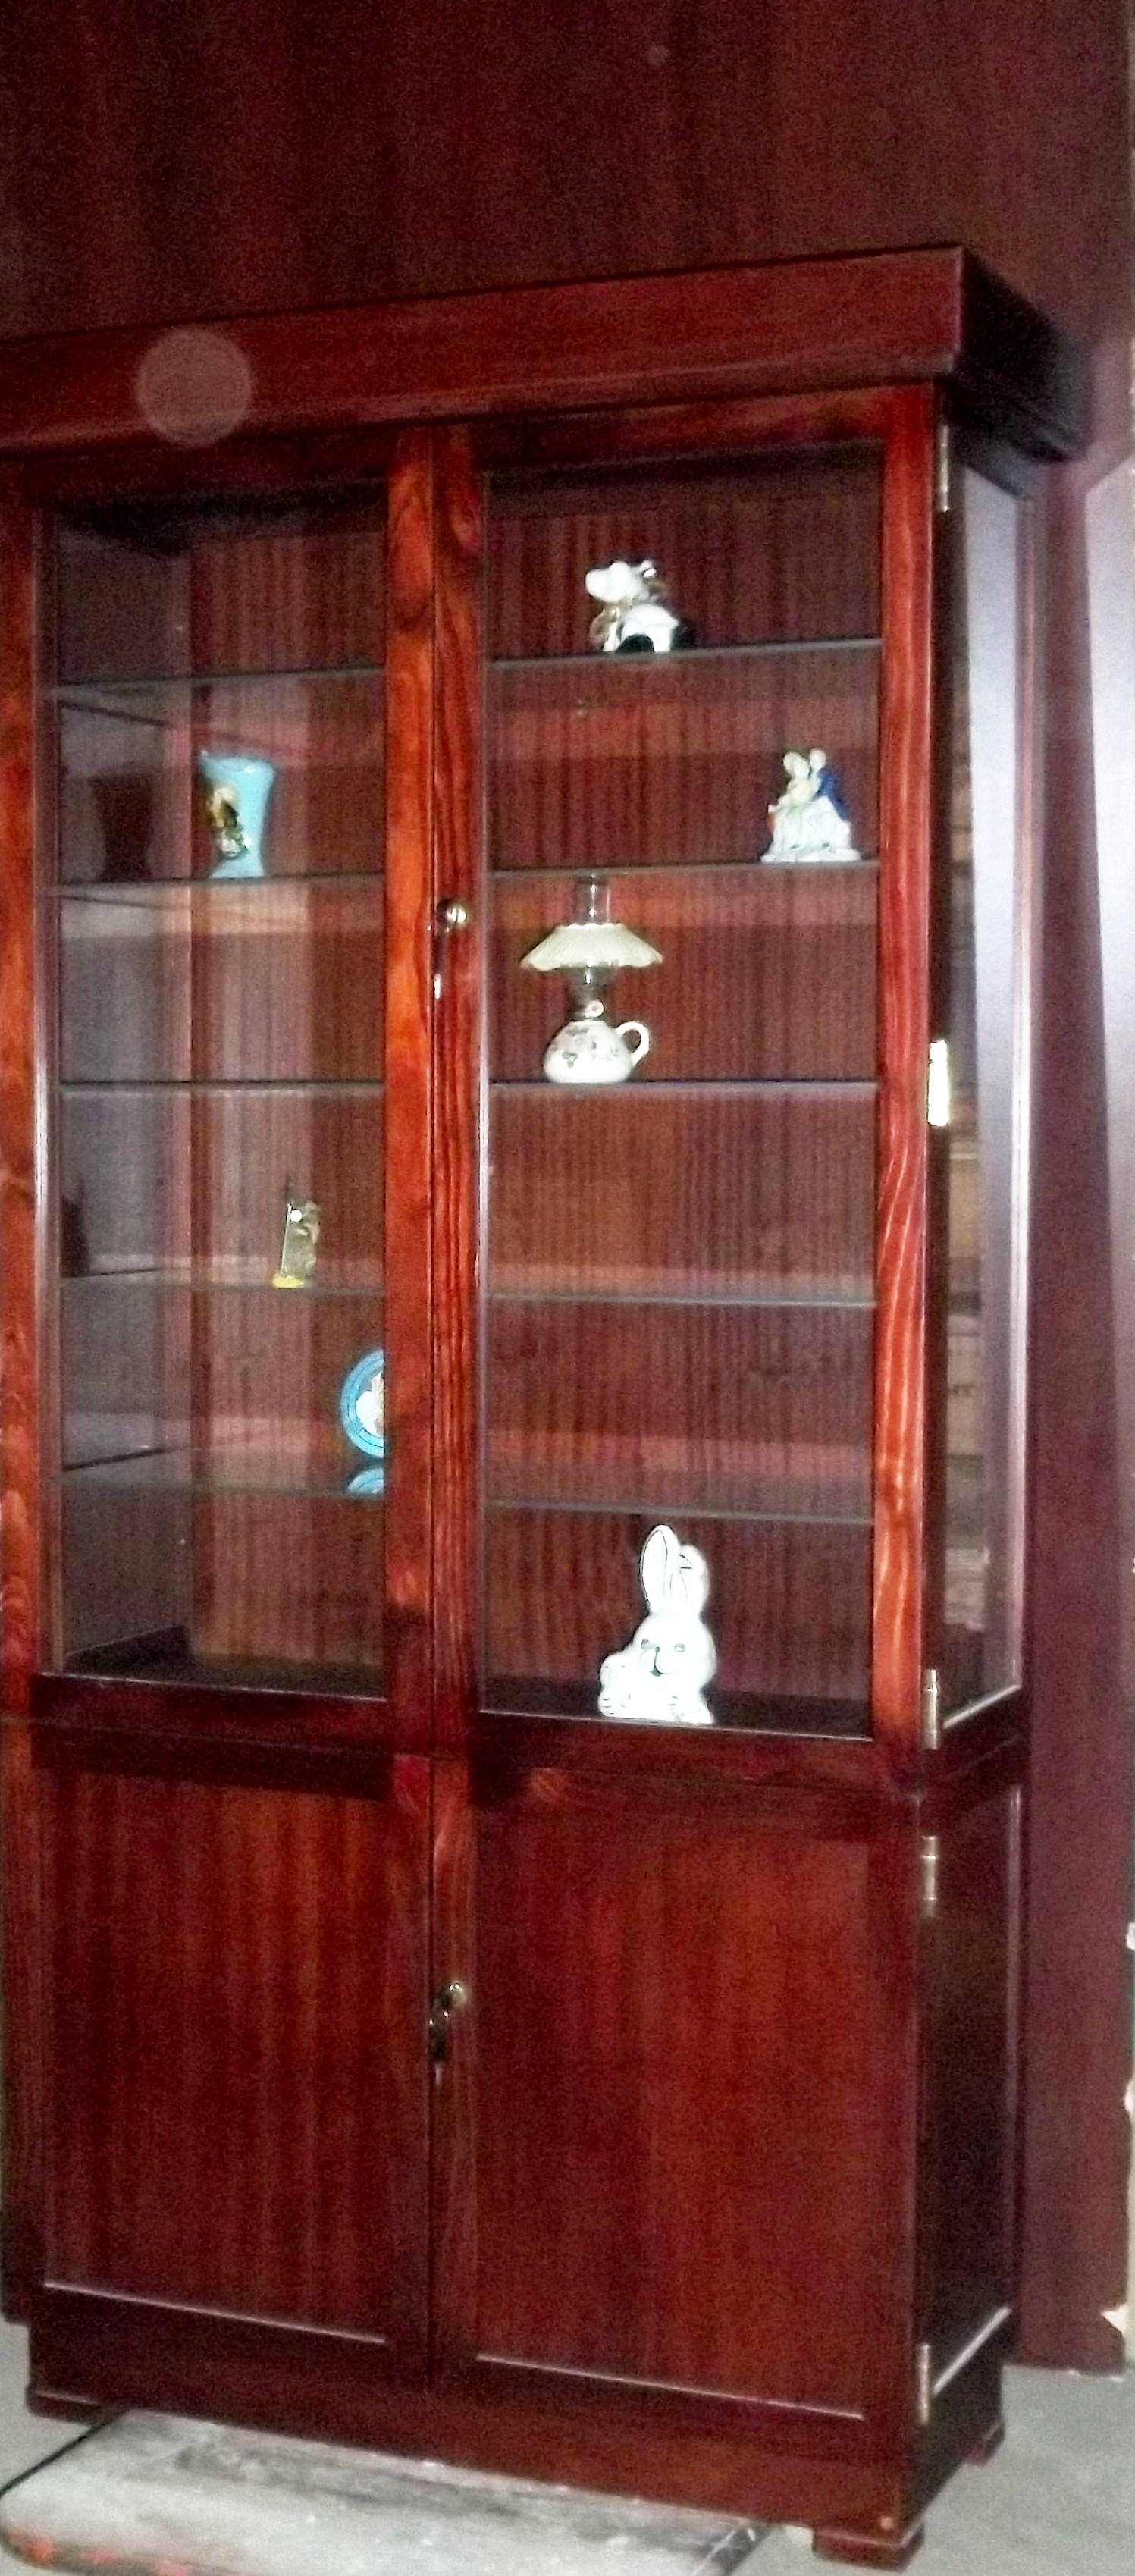 CABINETS Models cars and trains Display Show Cases Custom made